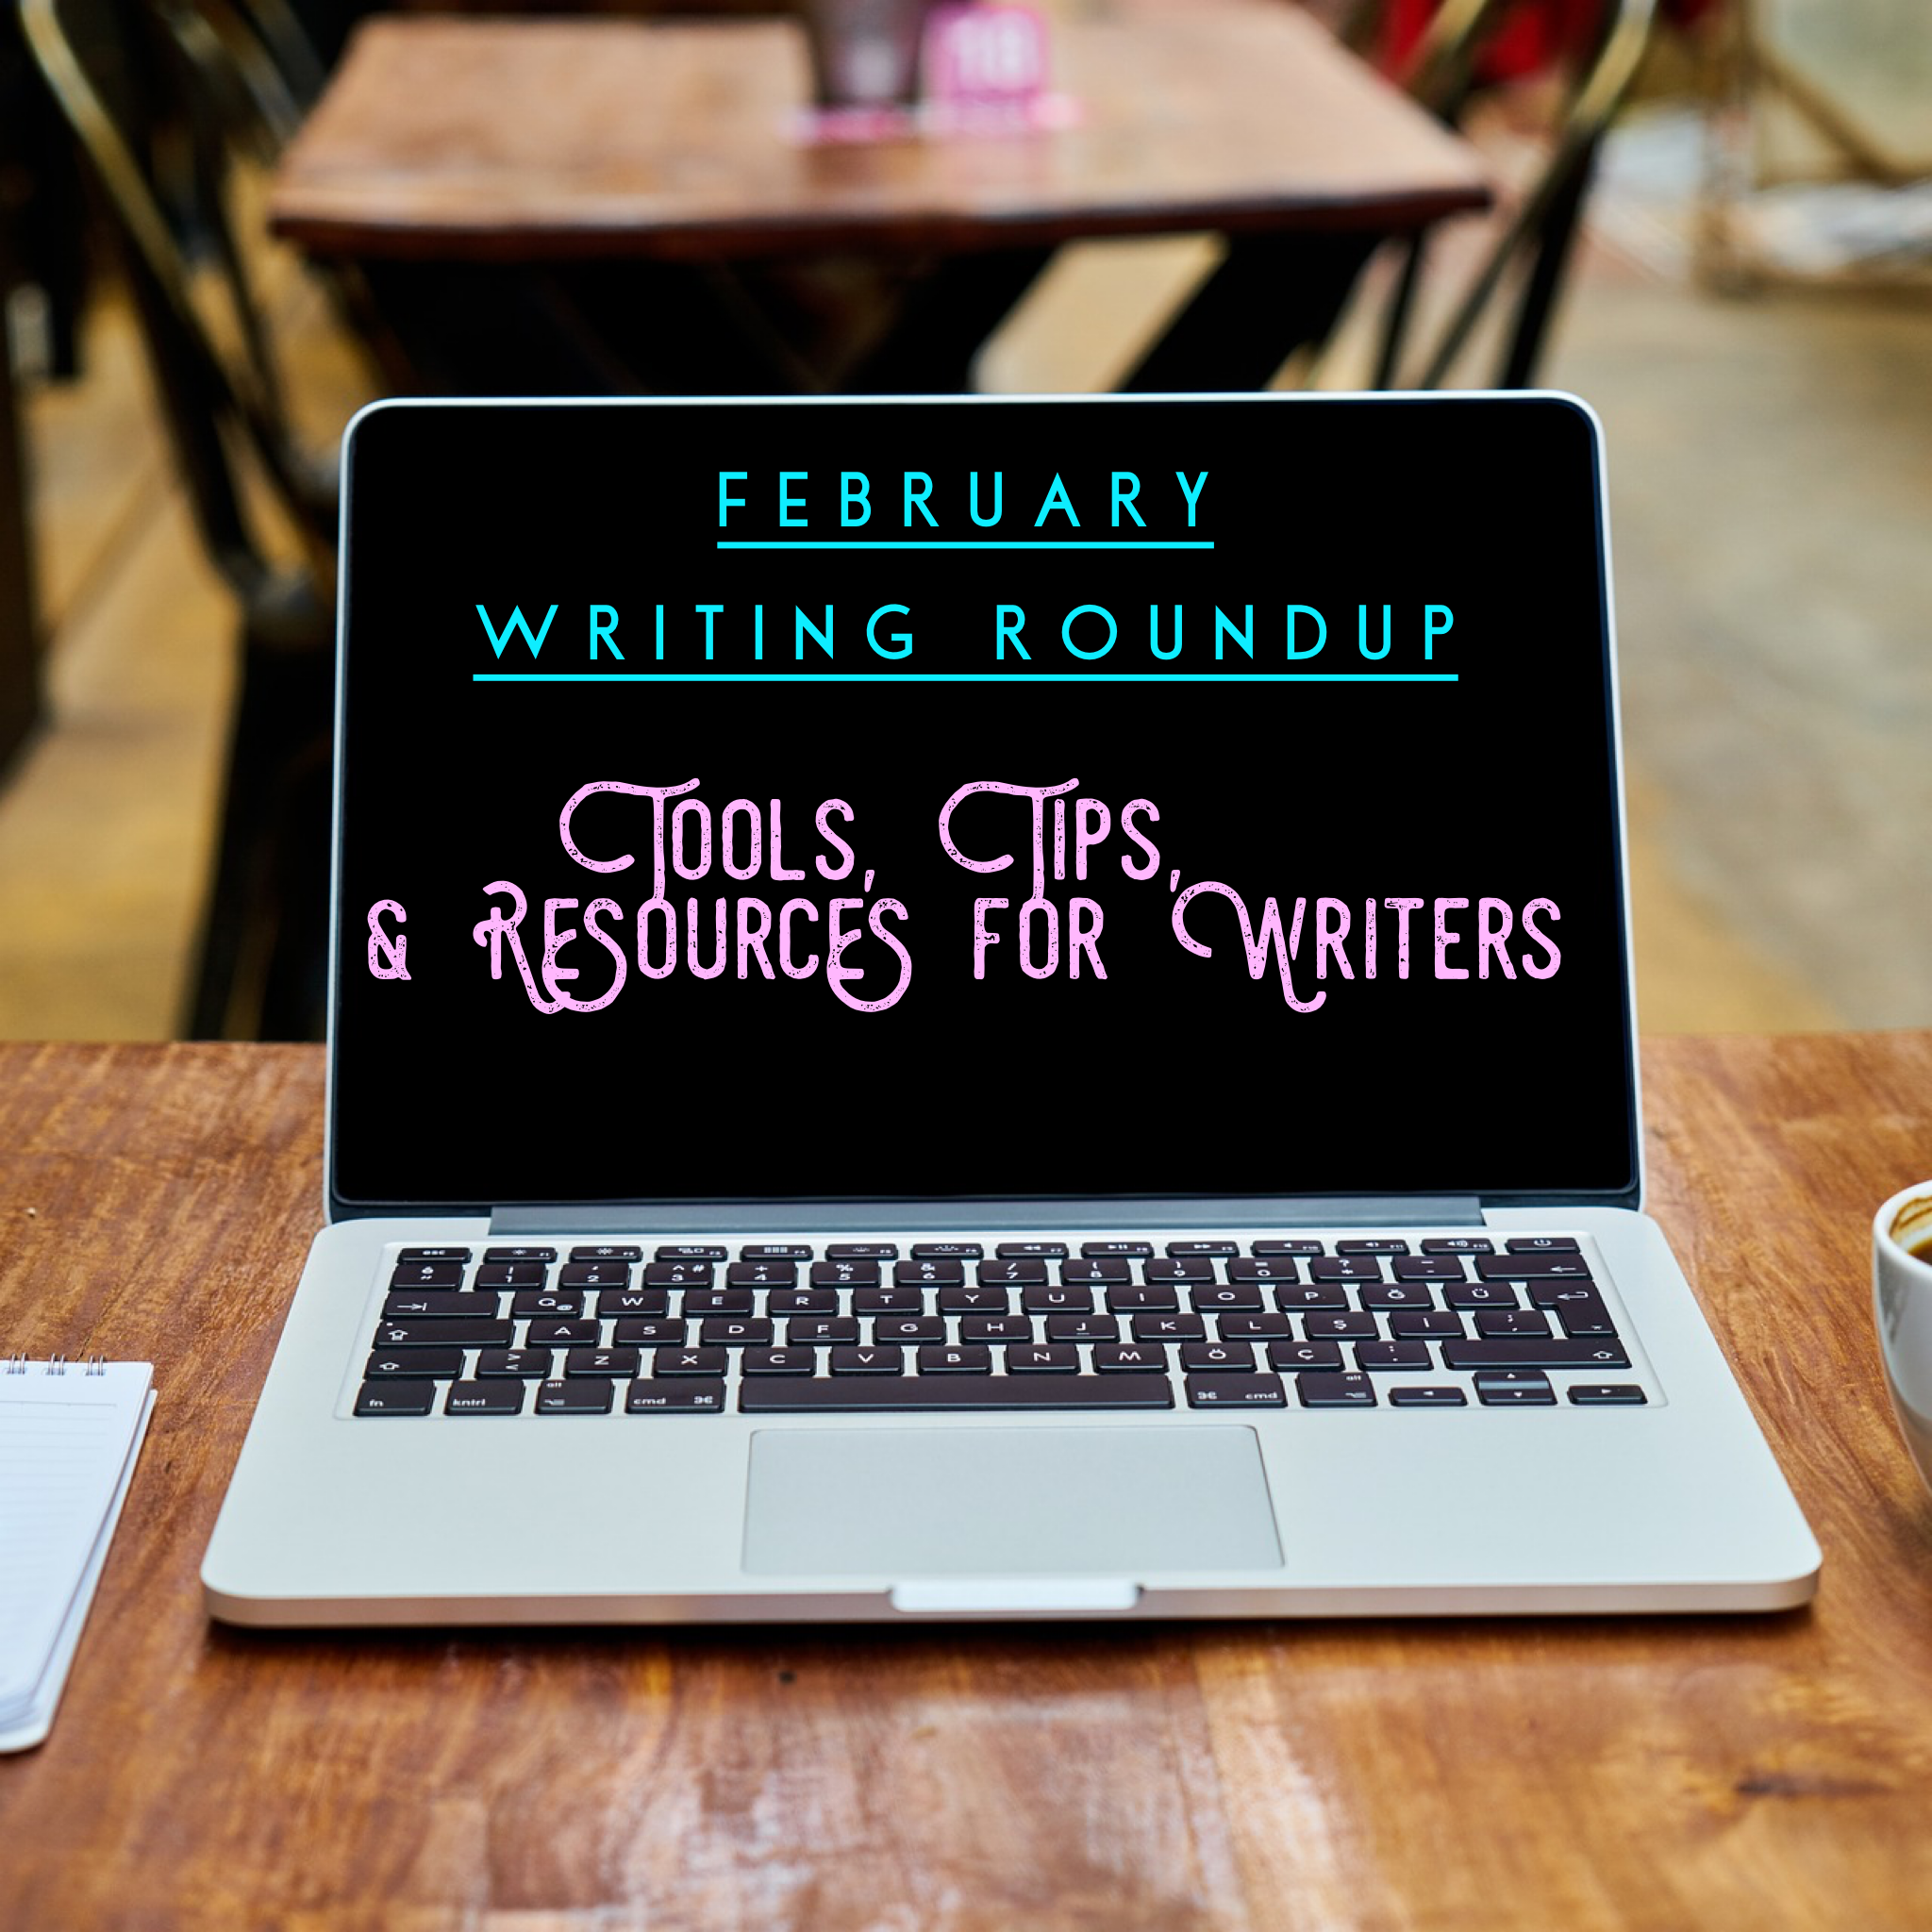 February Writing Roundup: Tools, Tips,and Resources for Writers via Diana Tyler